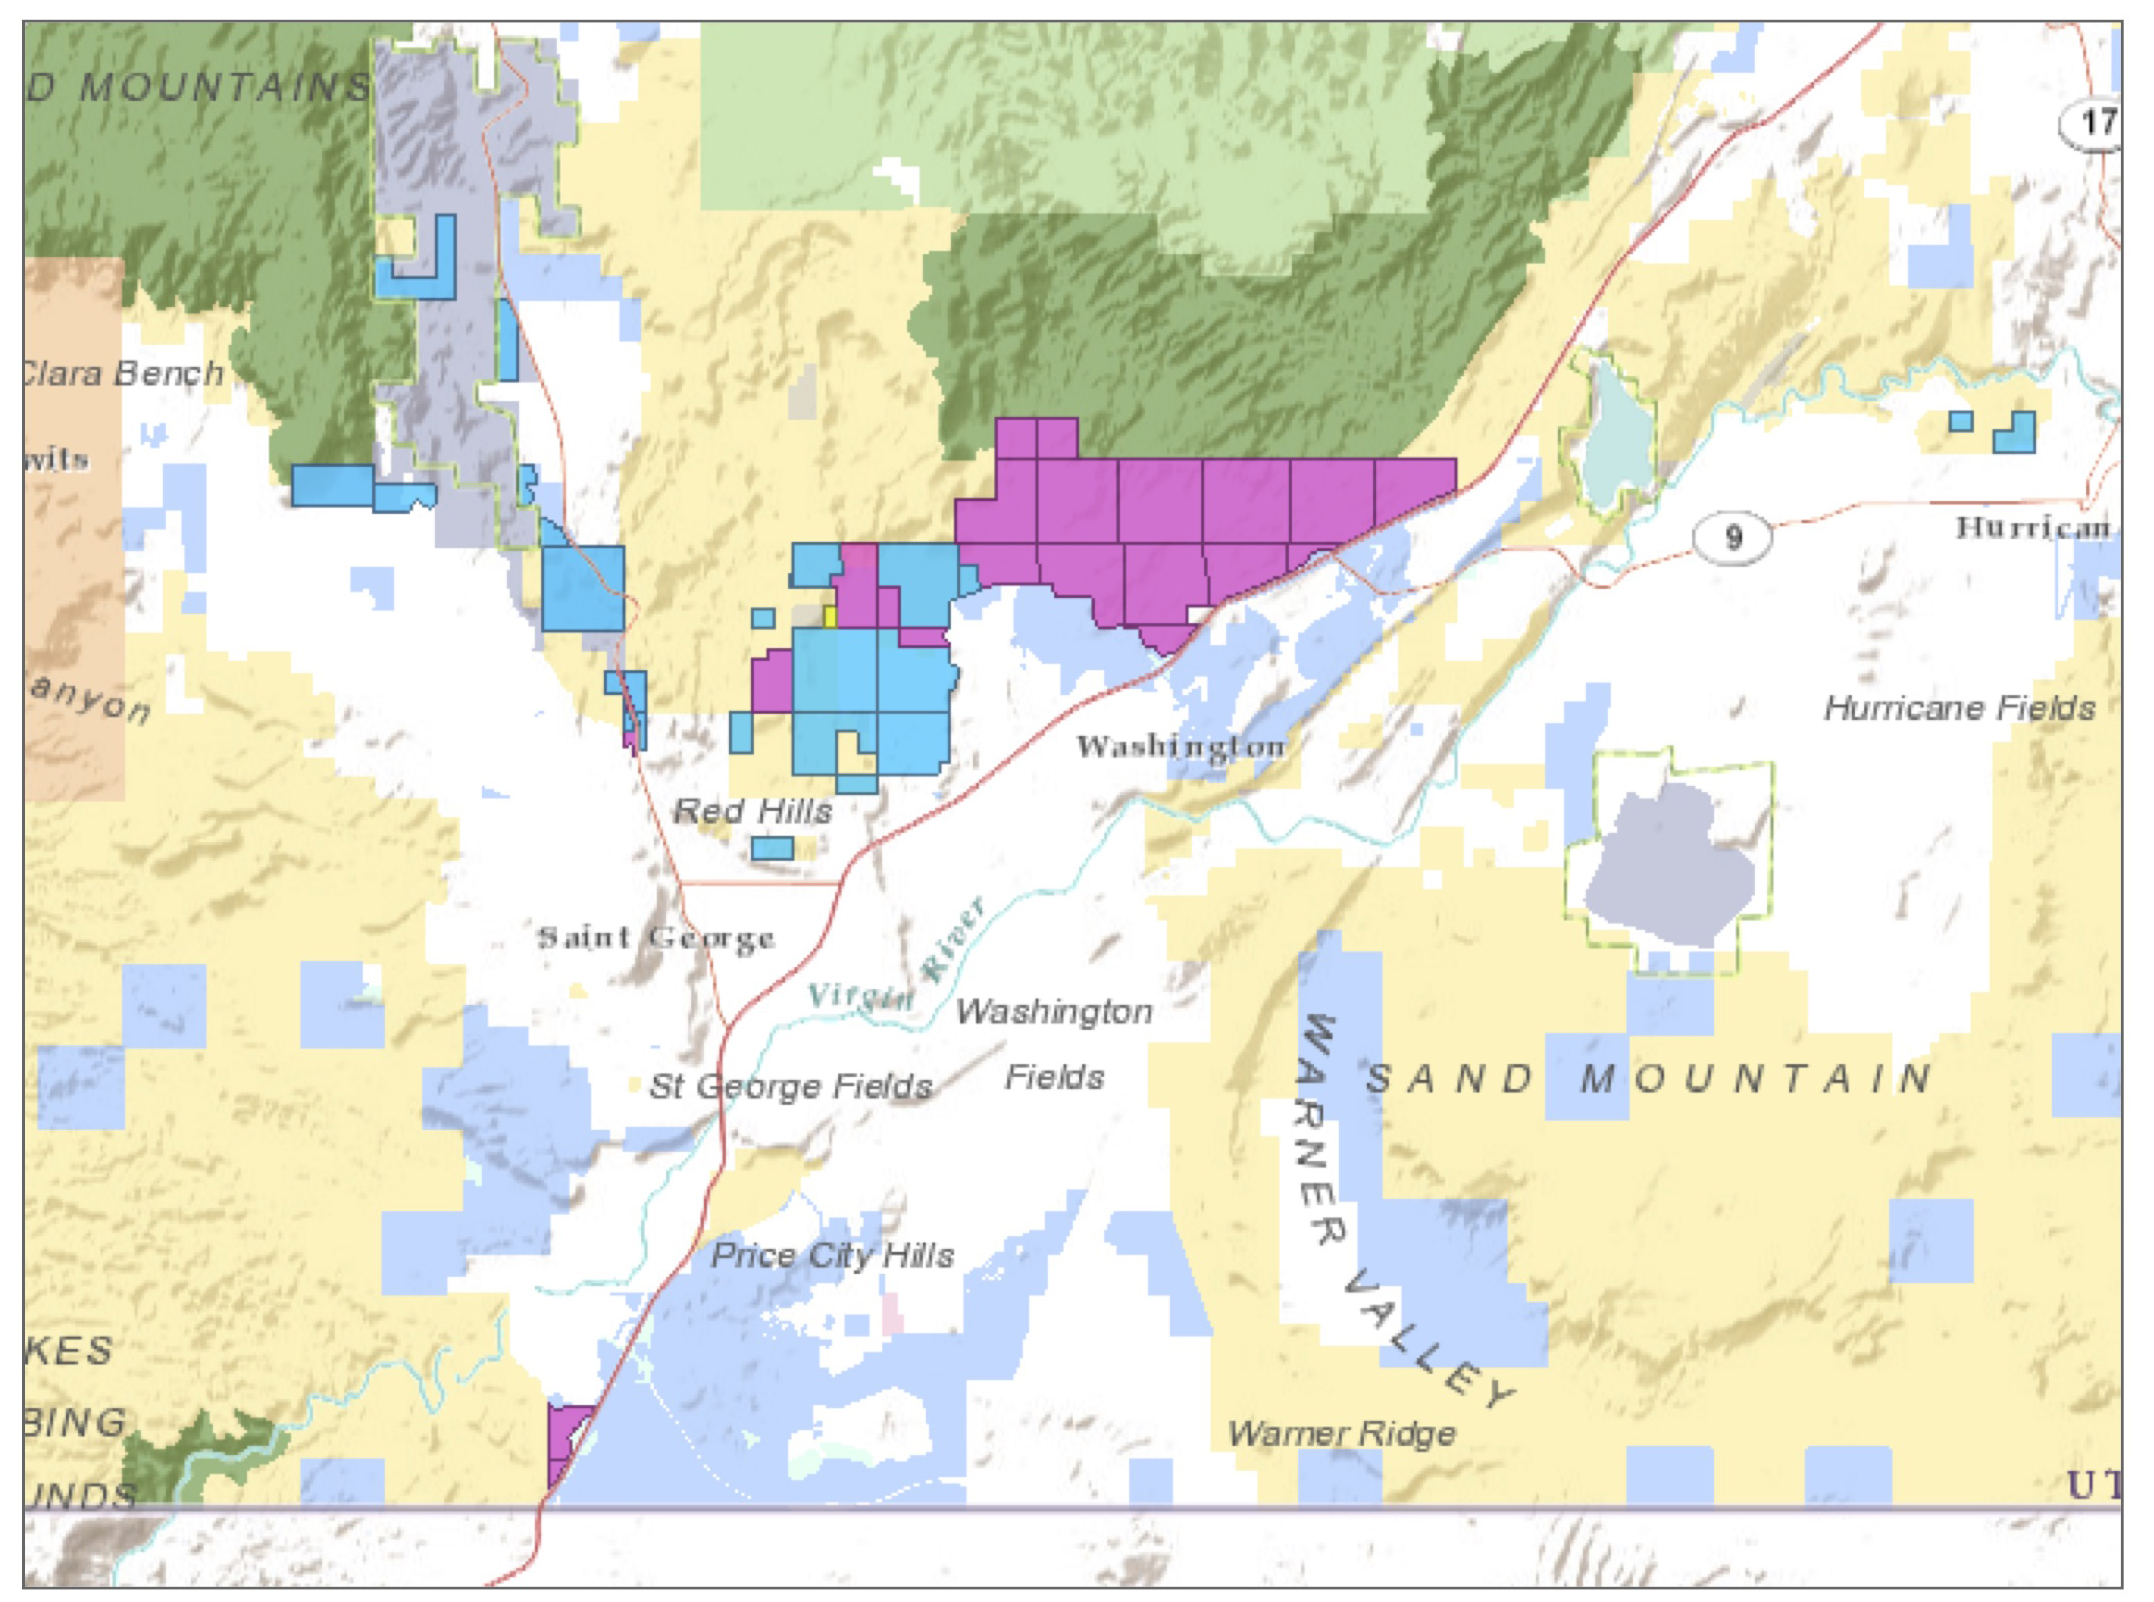 Pink denotes parcels owned by State Institutional Trust Lands that could potentially be transferred to the Bureau of Land Management in a complex trade triggered by the expansion of the Utah Test and Training Range | Image courtesy of SITLA, St. George News